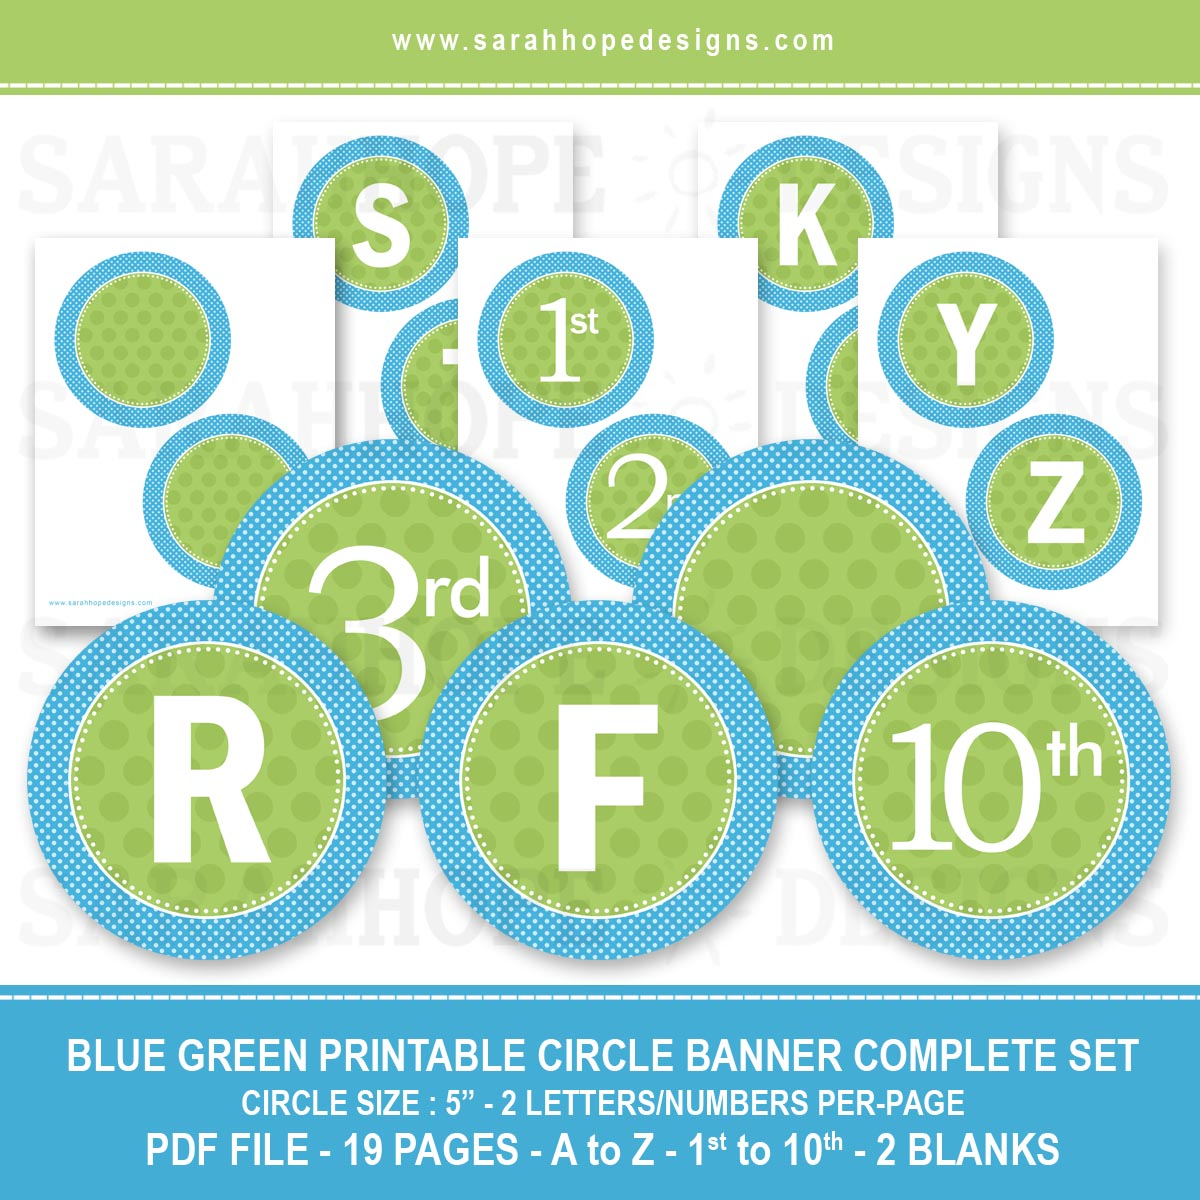 photo regarding Printable Letters Banner called Spell Out One thing With such Cost-free Alphabet Circle Banners